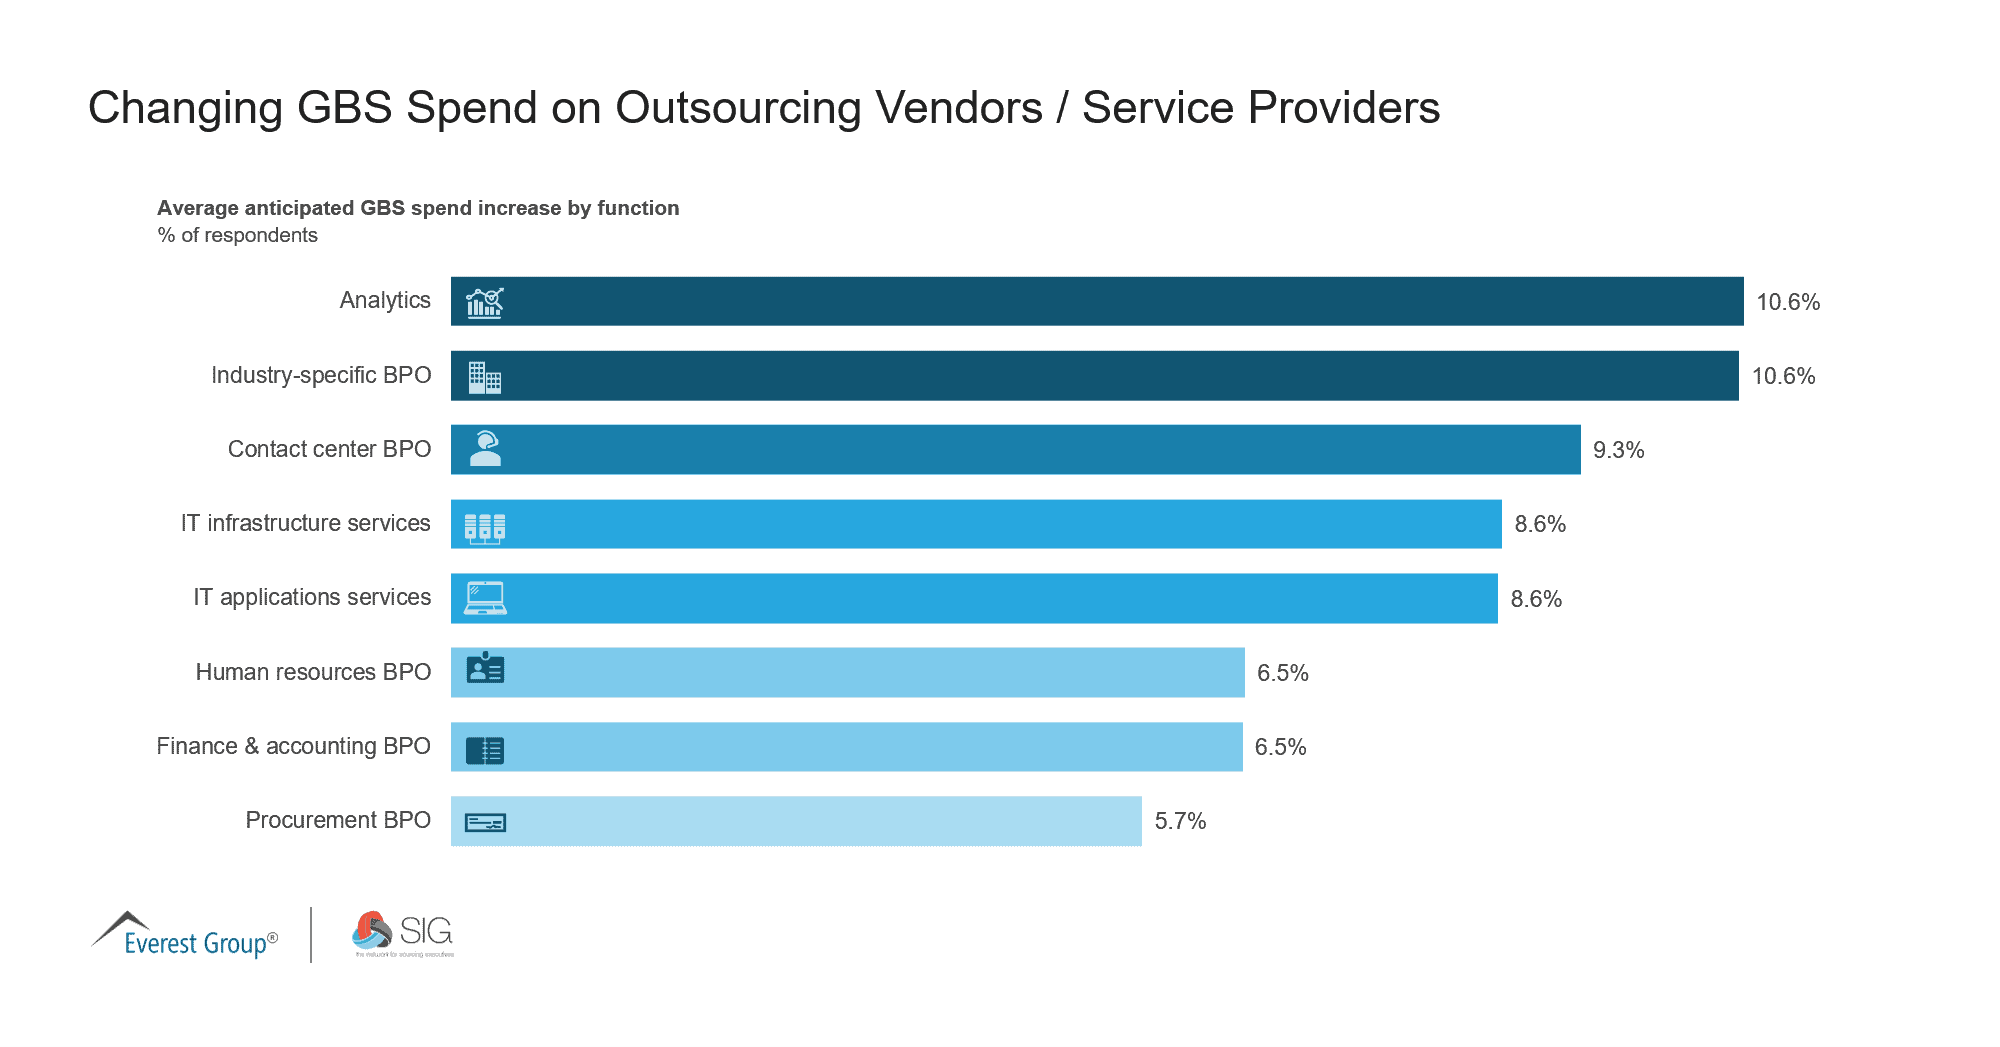 May 2021 Quick Poll | Changing GBS Spend on Outsourcing Vendors - Service Providers